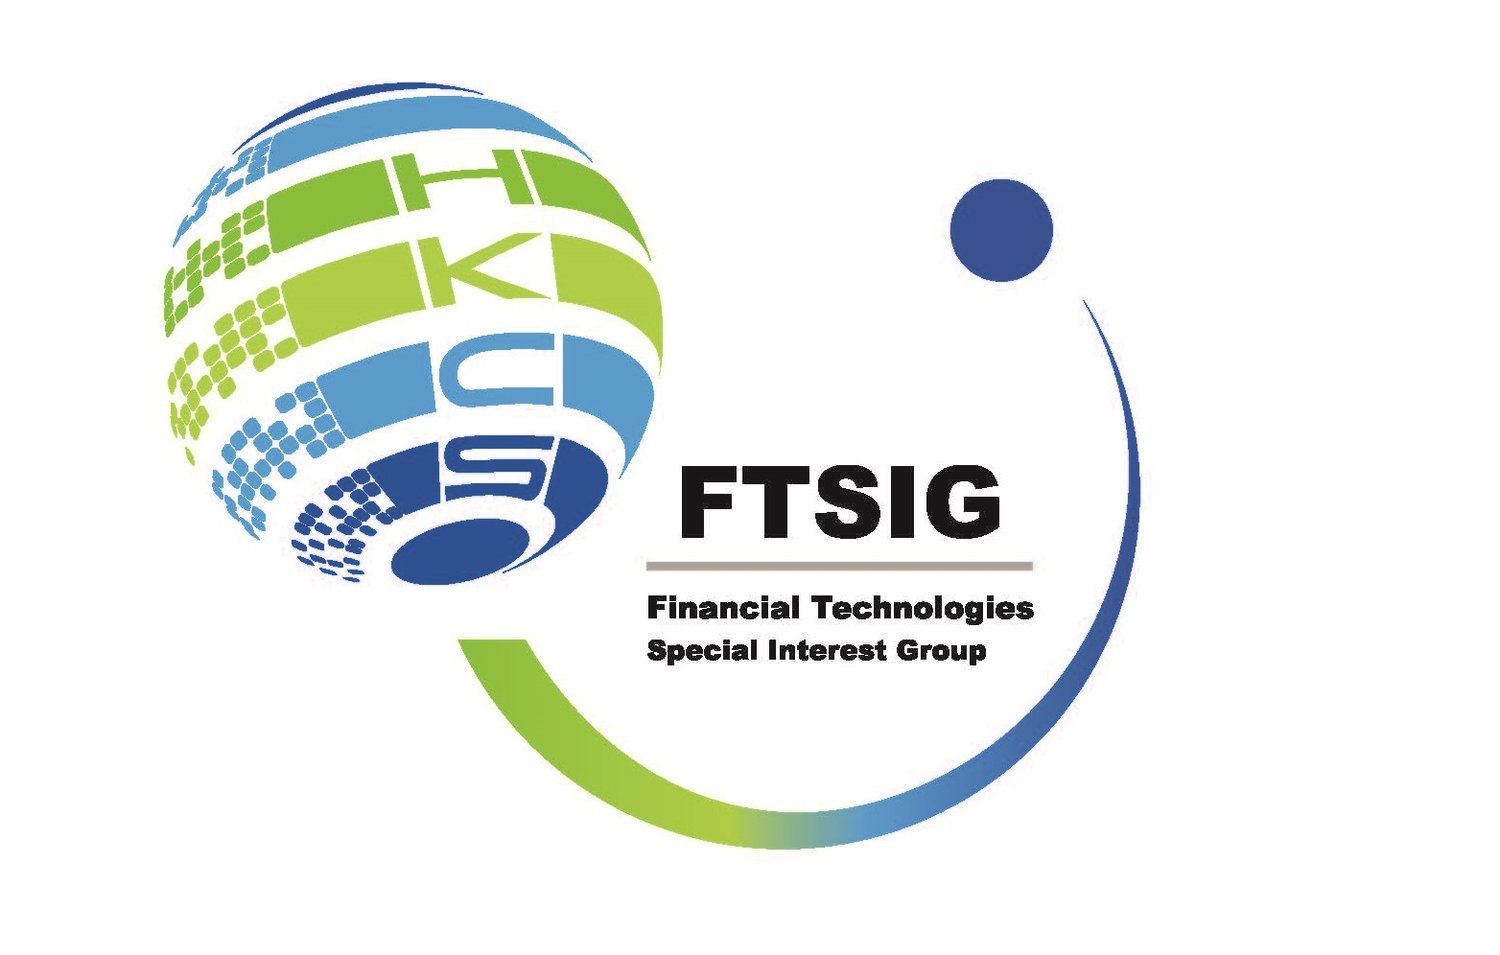 HKCS Financial Technology Special Interest Group